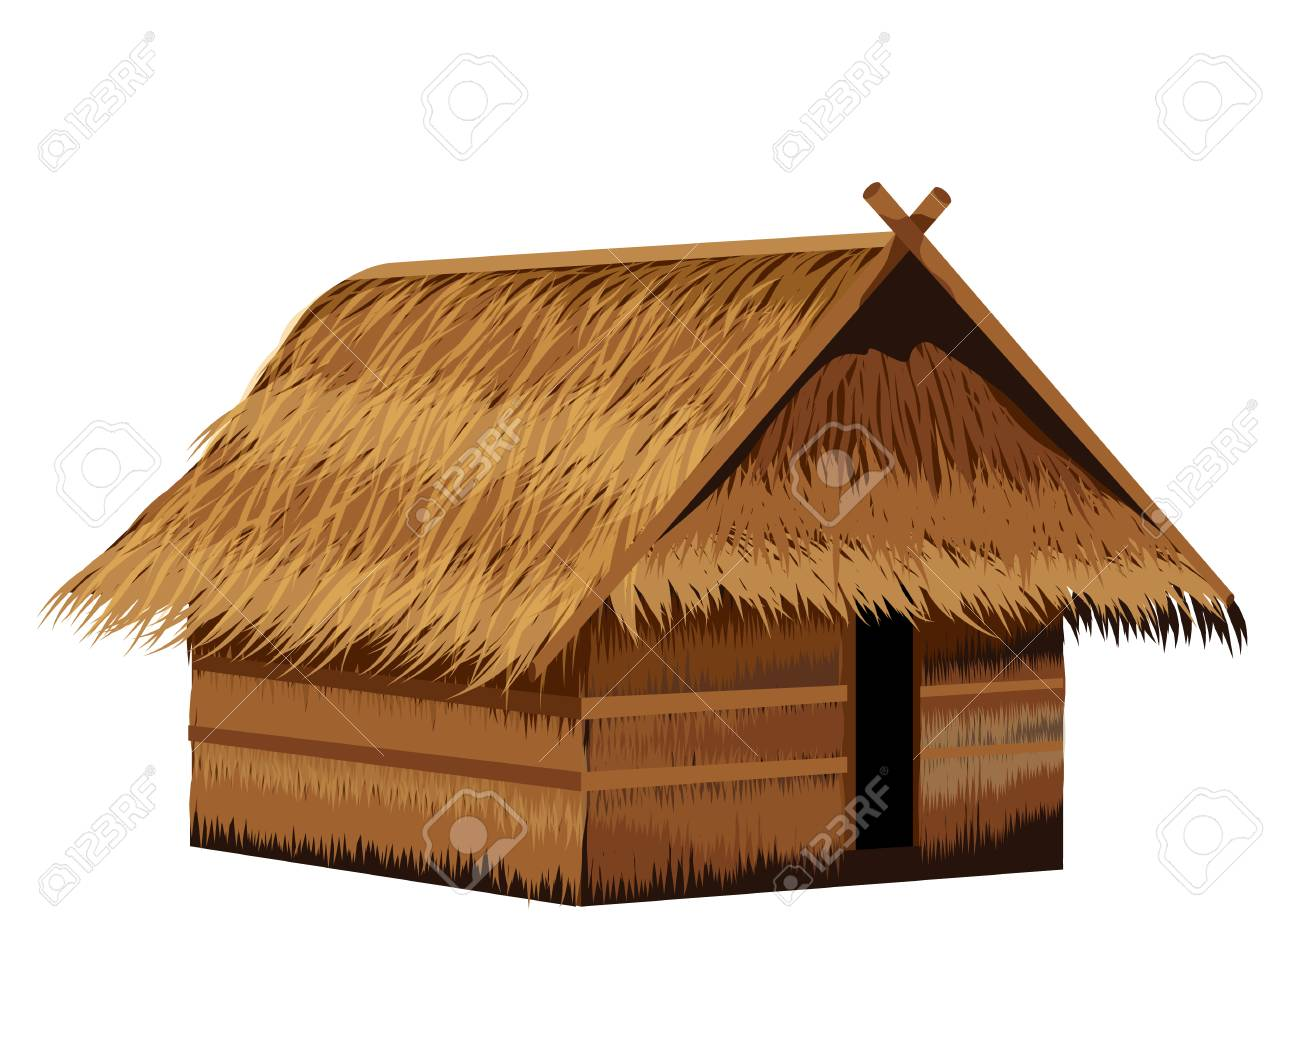 Isolate Grass Hut And Ingredient Around Hut Vector Design Royalty Free  Cliparts, Vectors, And Stock Illustration. Image 88619169.